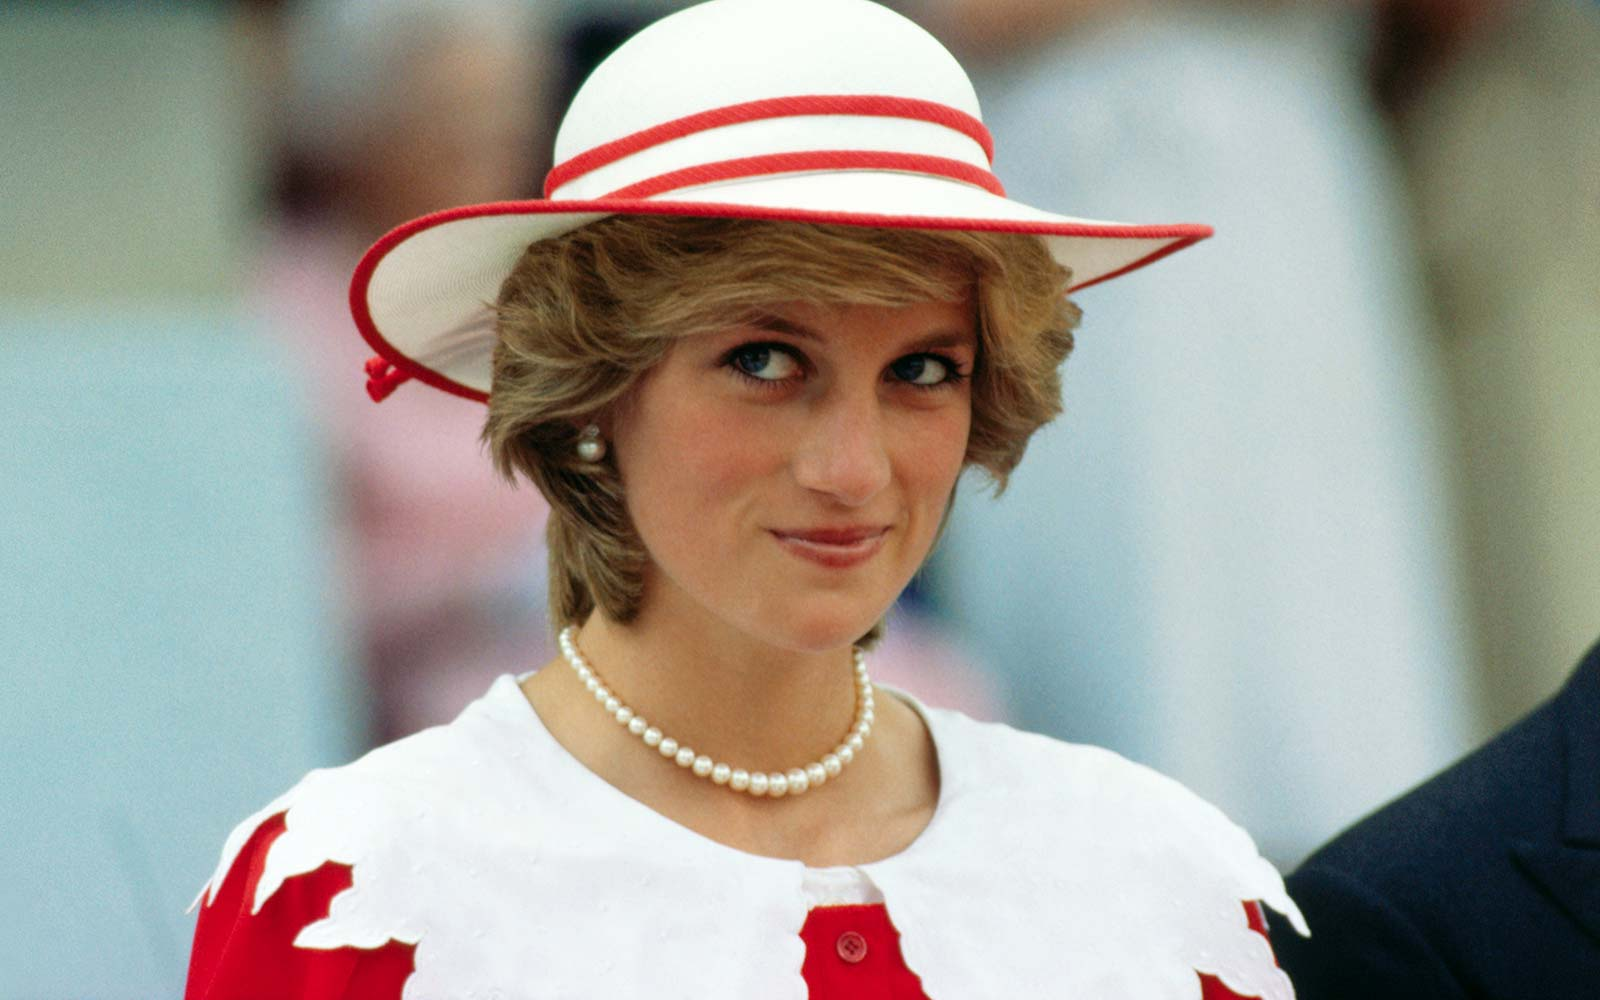 Diana, Princess of Wales, wears an outfit in the colors of Canada during a state visit to Edmonton, Alberta